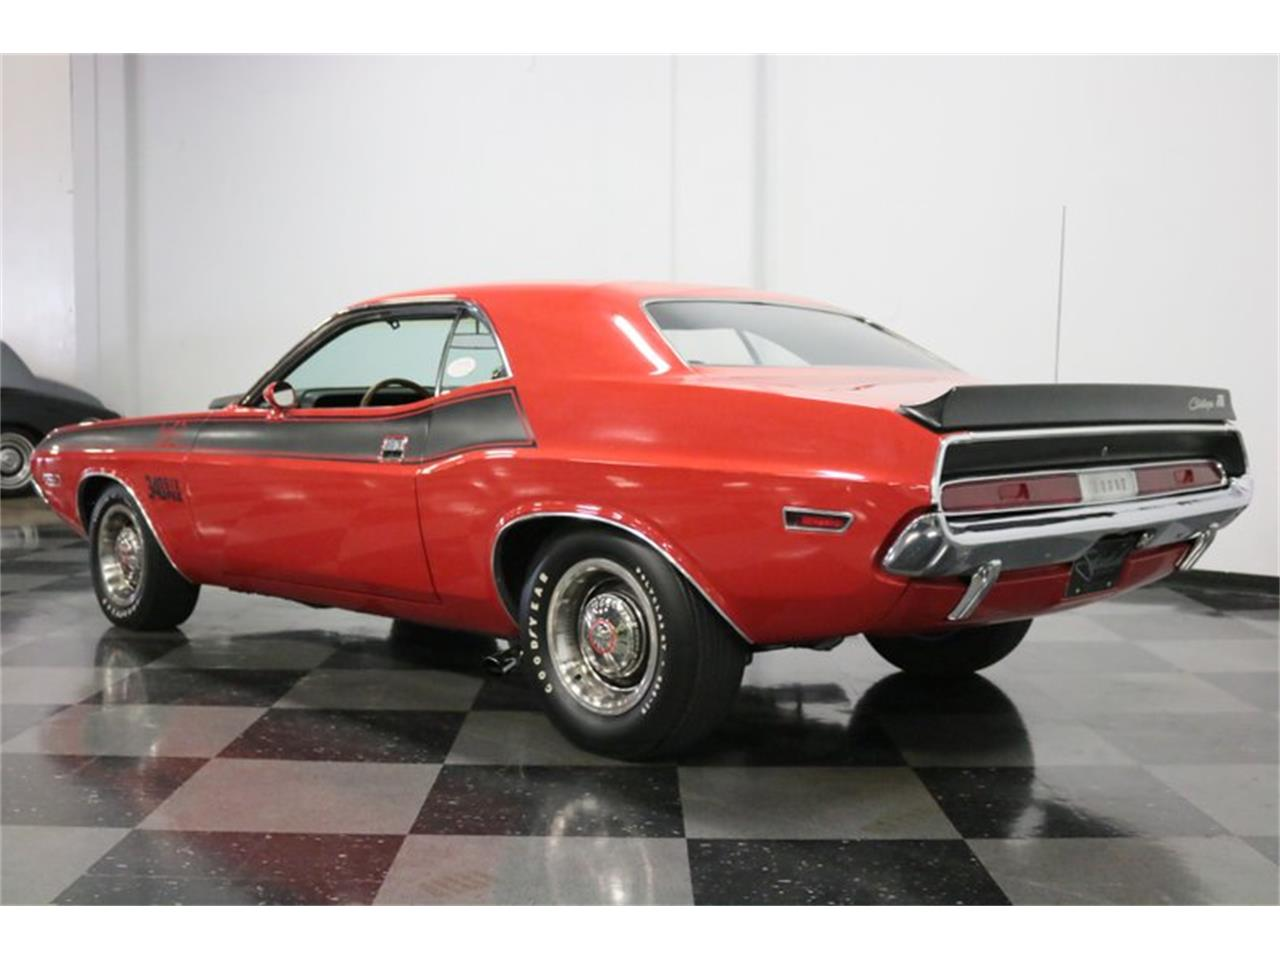 Large Picture of Classic 1970 Dodge Challenger T/A - $69,995.00 Offered by Streetside Classics - Dallas / Fort Worth - N7CT